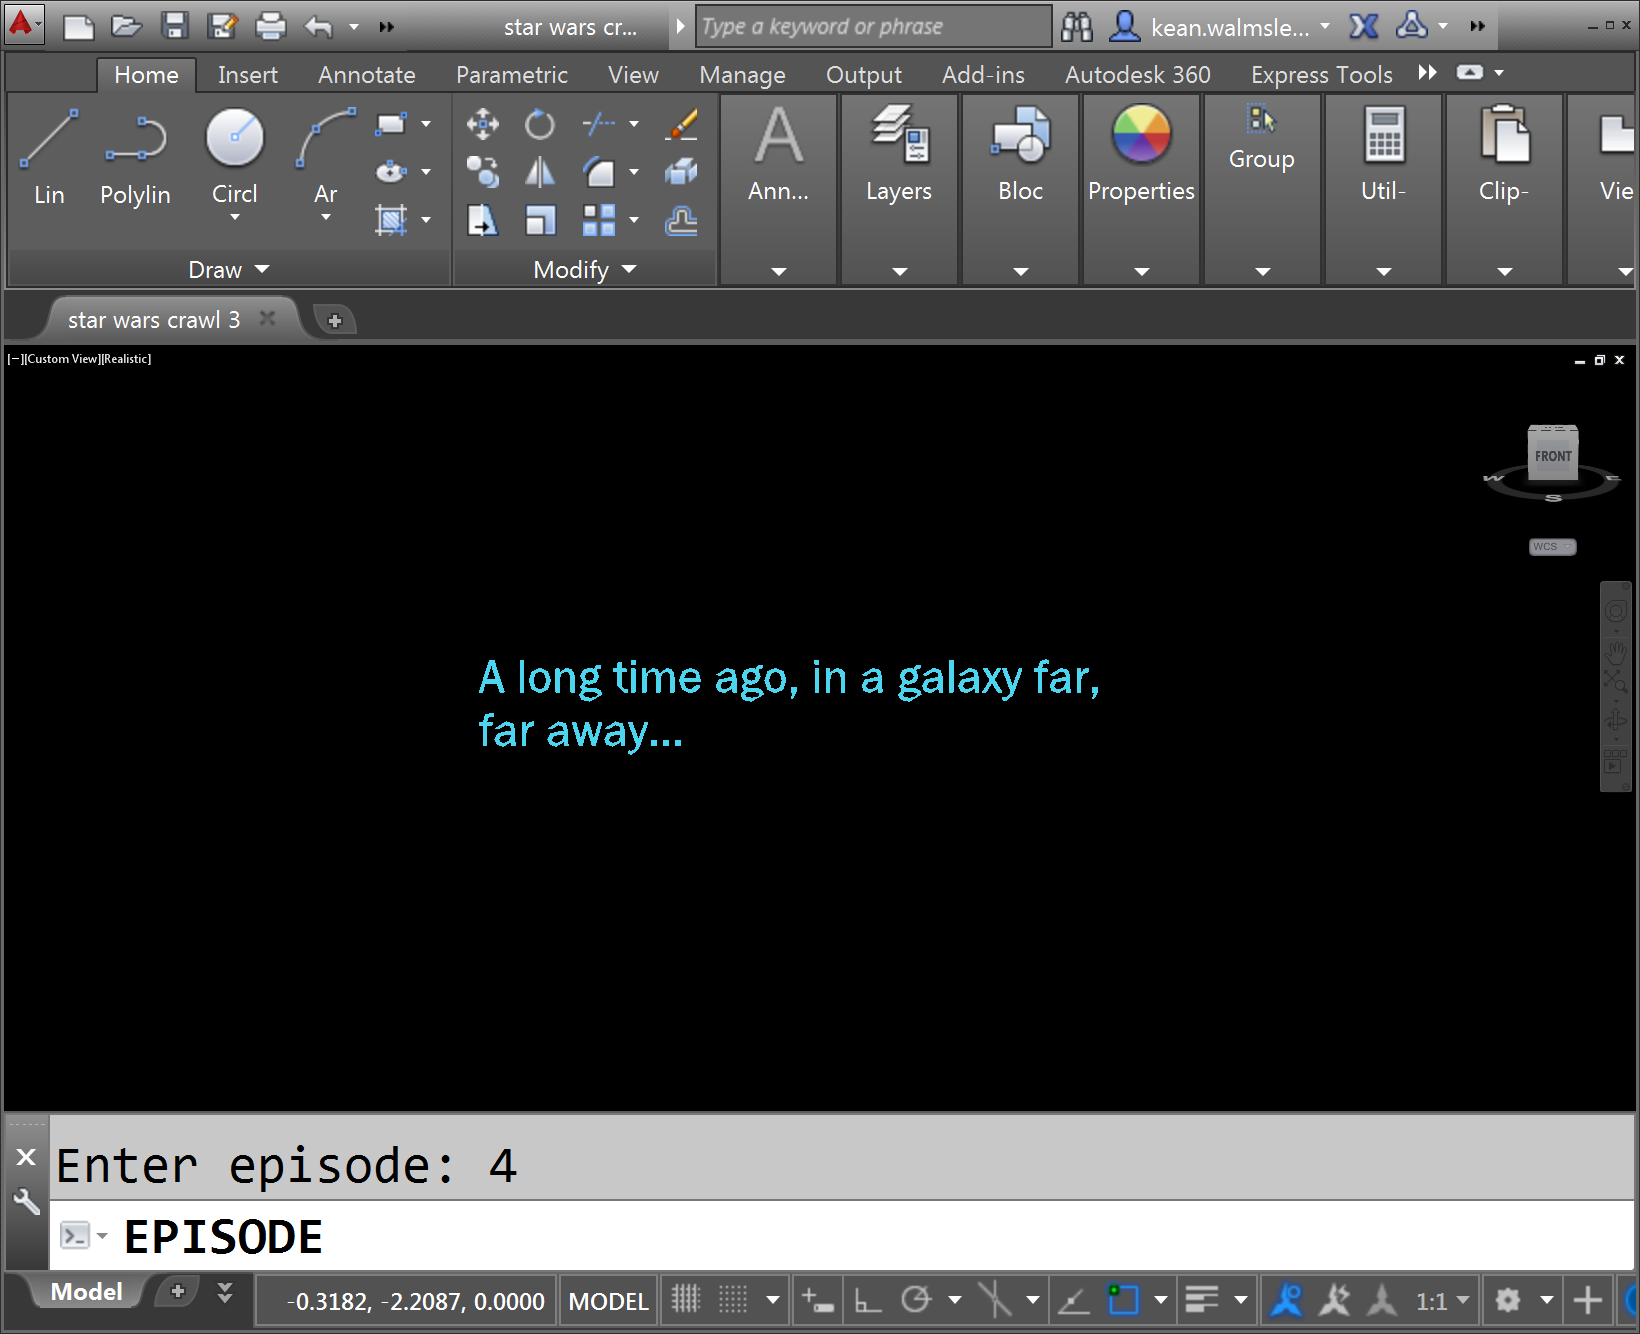 Recreating the Star Wars opening crawl in AutoCAD using F# Part 1